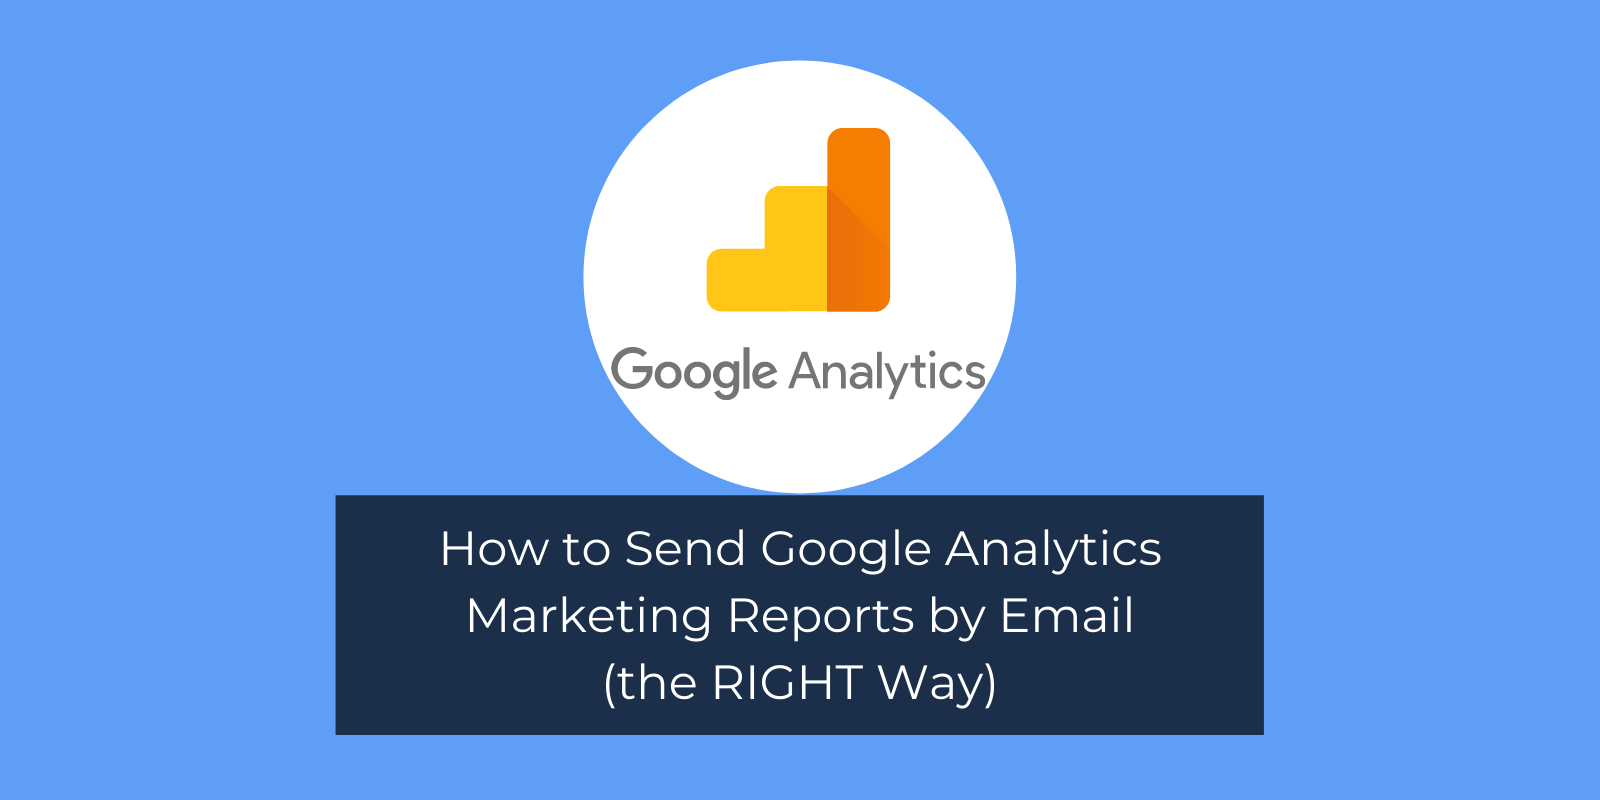 How to Send Google Analytics Marketing Reports by Email (the RIGHT Way)